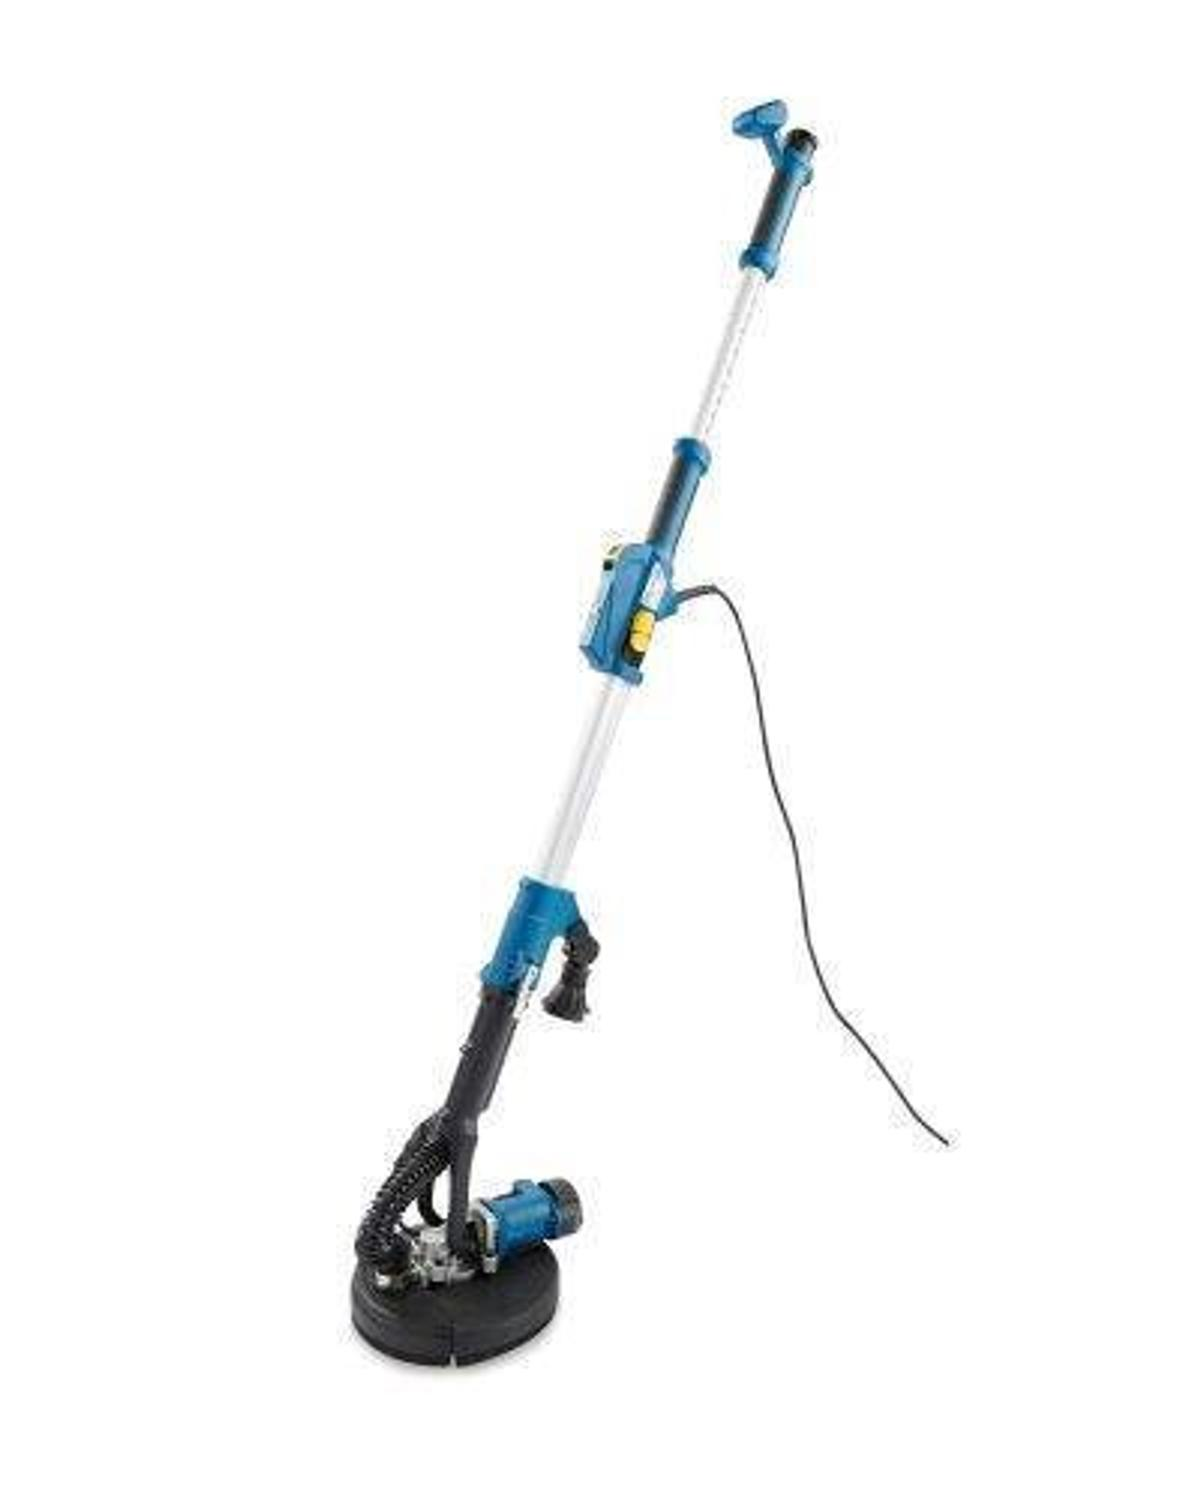 Workzone Telescopic LED Drywall Sander 710W in LE18 Blaby